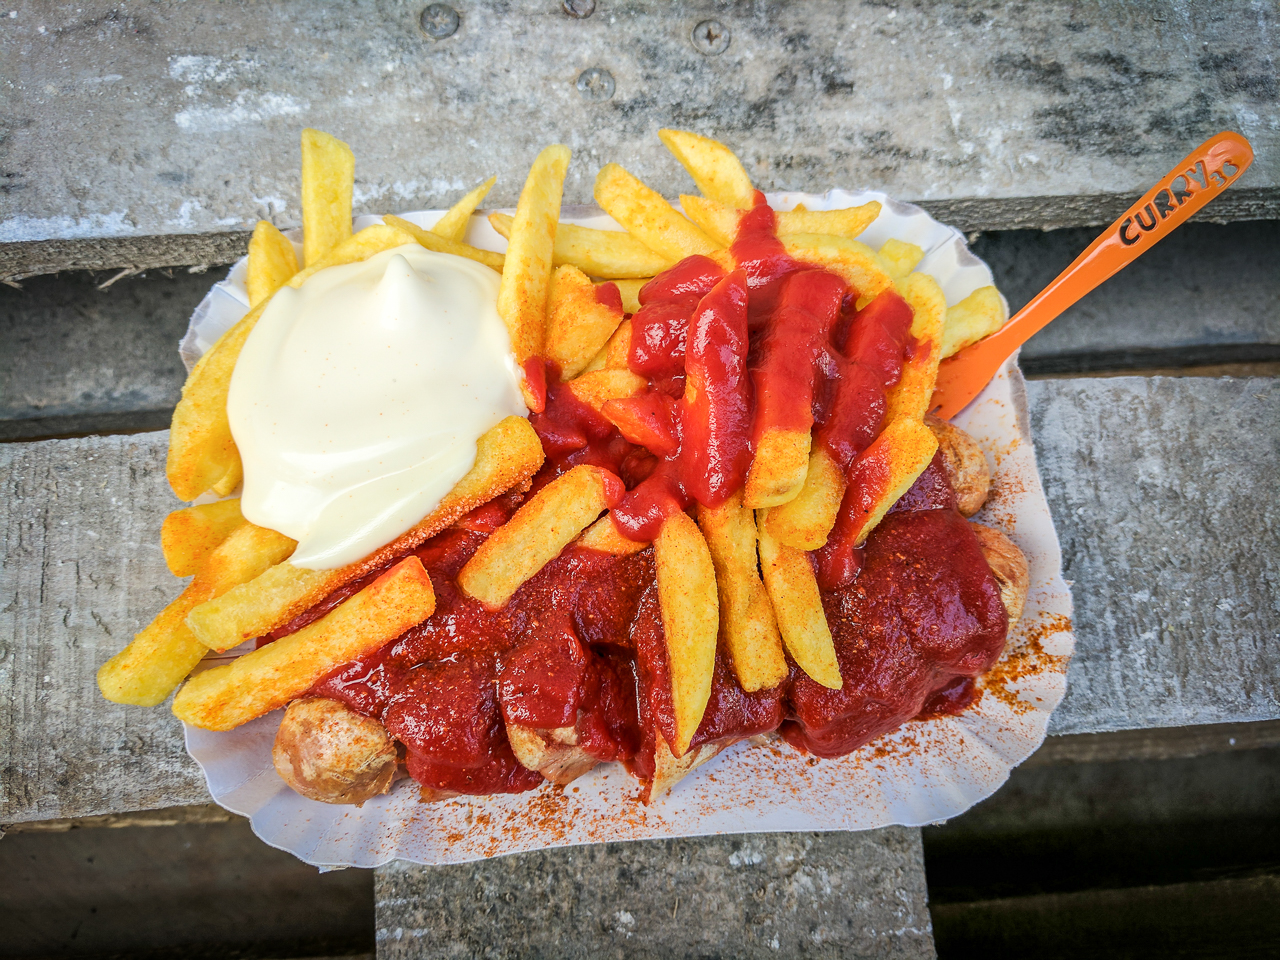 Cheap Eats in Berlin - Curry 36 Currywurst